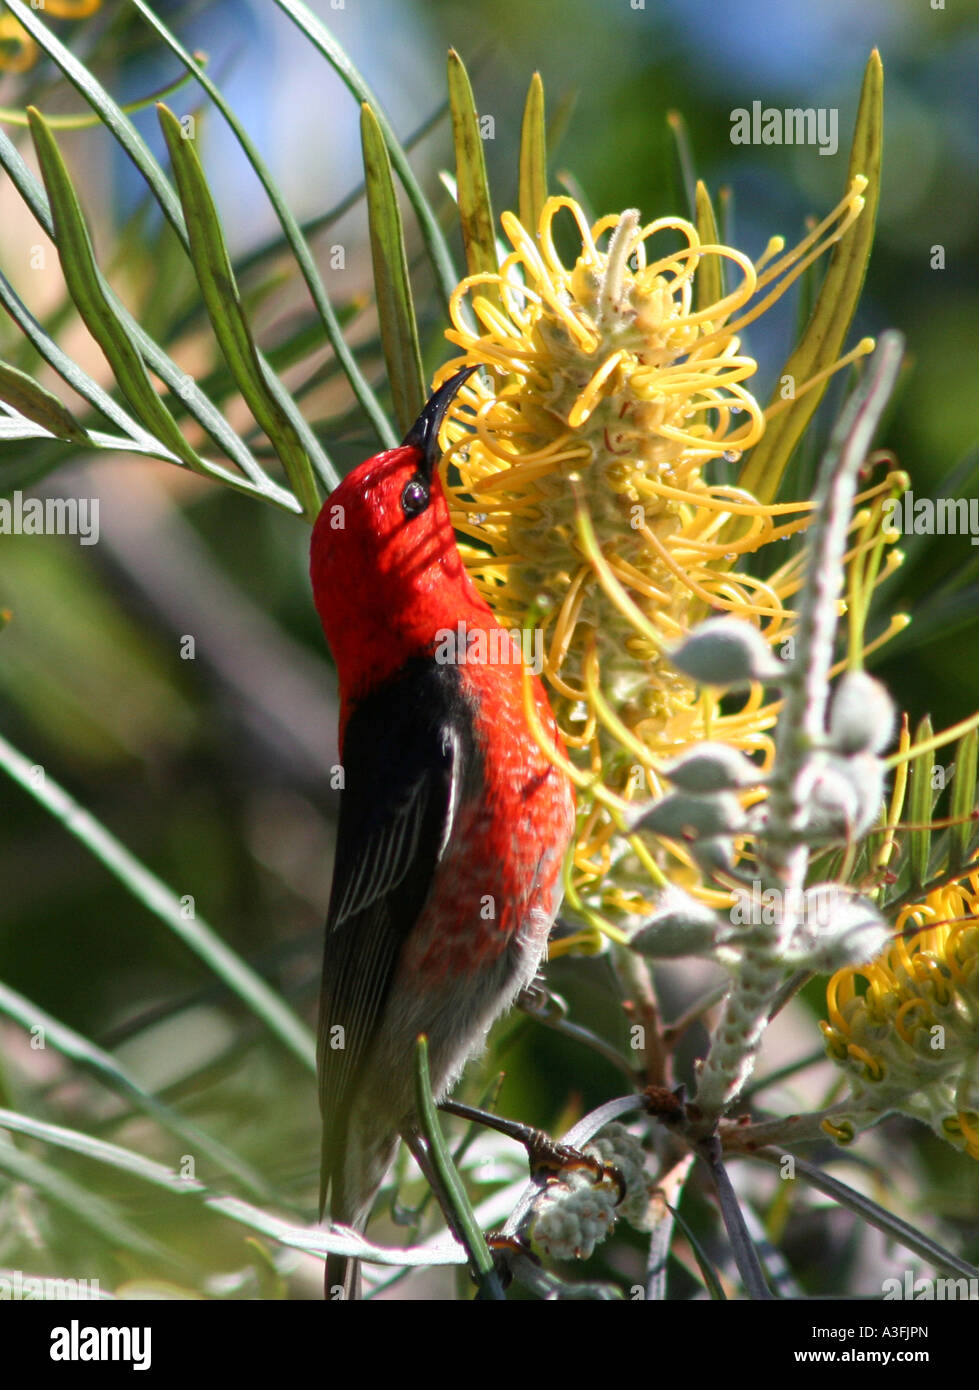 A SCARLET HONEYEATER FEEDING ON GREVILLEA TREES BAPDA9125 - Stock Image